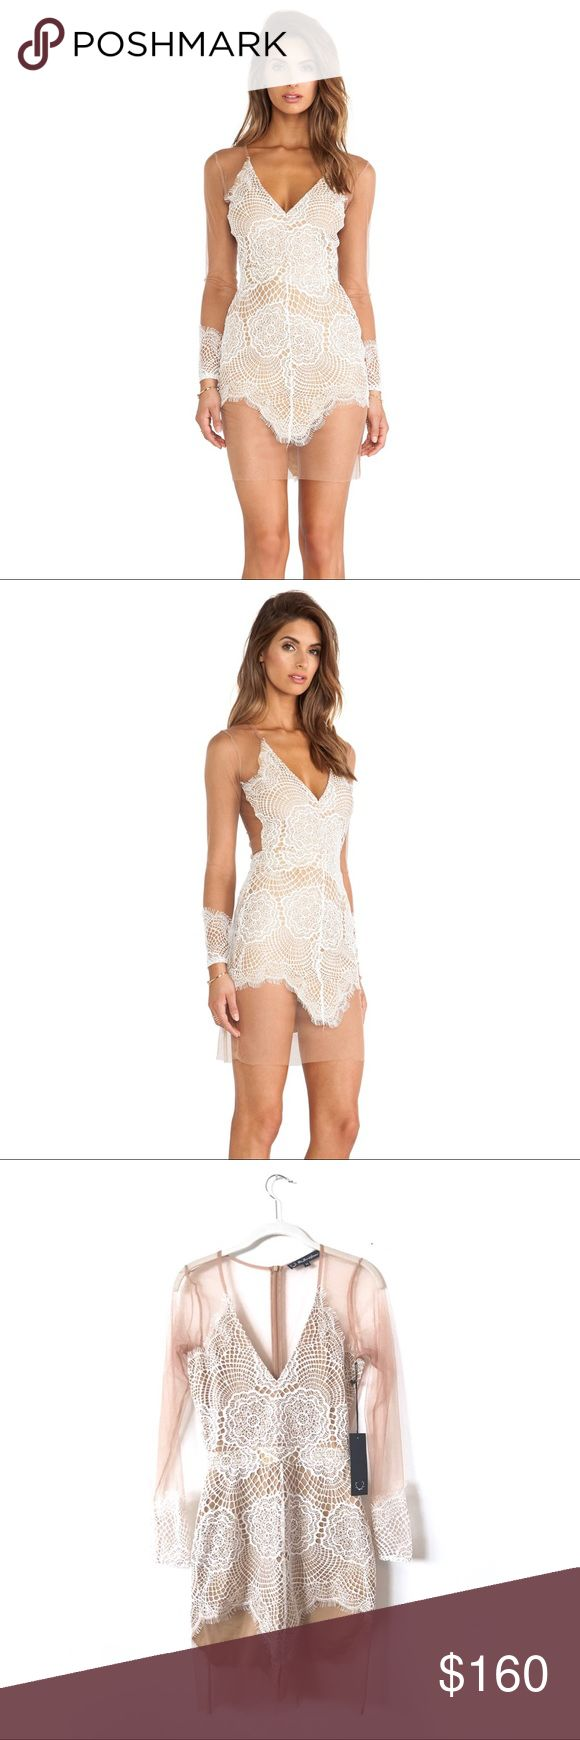 NWT. For Love & Lemons Antigua Mini Dress in White BRAND NEW WITH TAGS!! For Love & Lemons Antigua Mini Dress in White. Delicate modern geometric race backed by nude tulle. Long sleeves with lace cuffs and illusion back. Size M. For Love And Lemons Dresses Mini